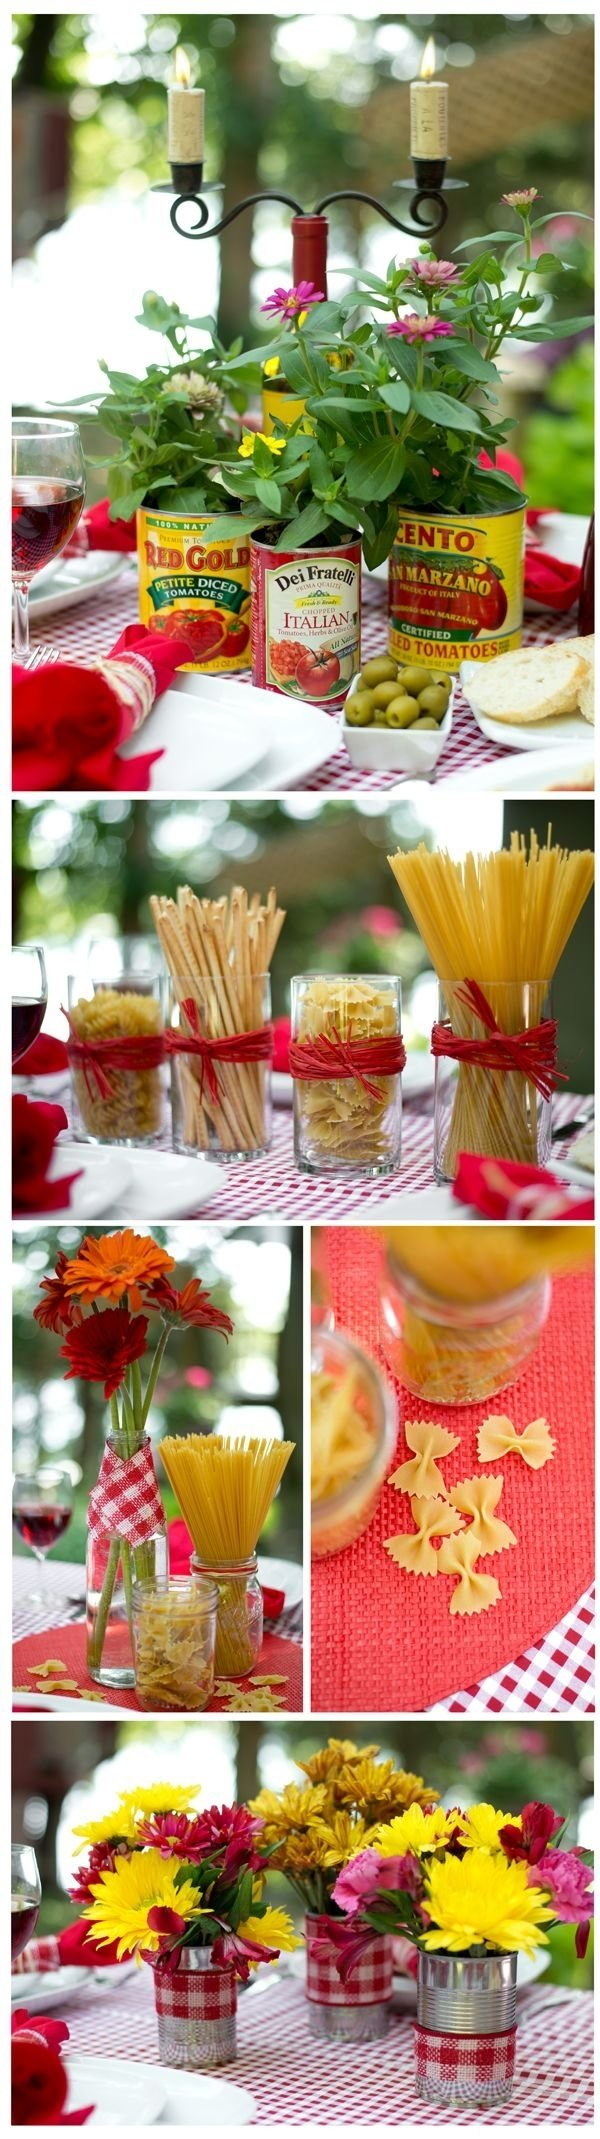 10 Unique Rehearsal Dinner Ideas On A Budget budget centerpiece ideas for an italian dinner theme dinner themes 1